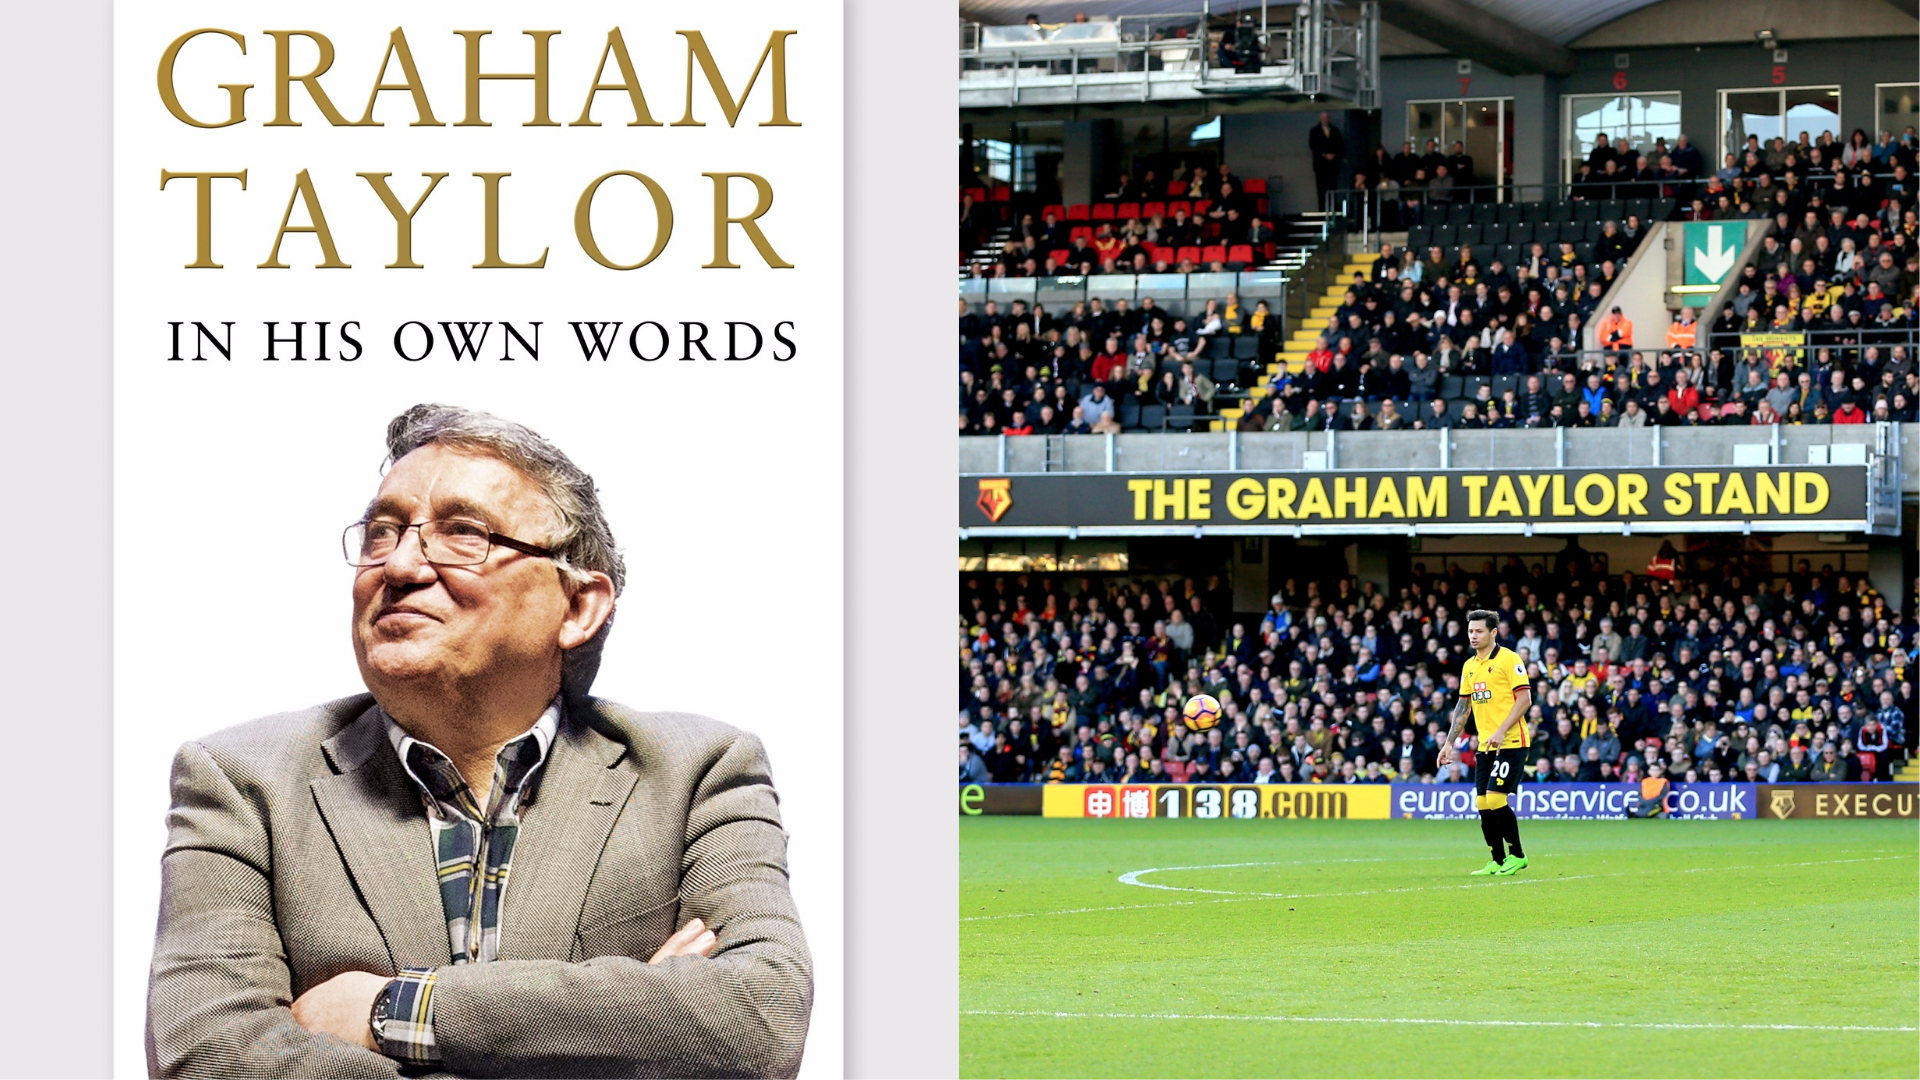 Graham Taylor's autobiography and an image of the Graham Taylor stand at Vicarage Road